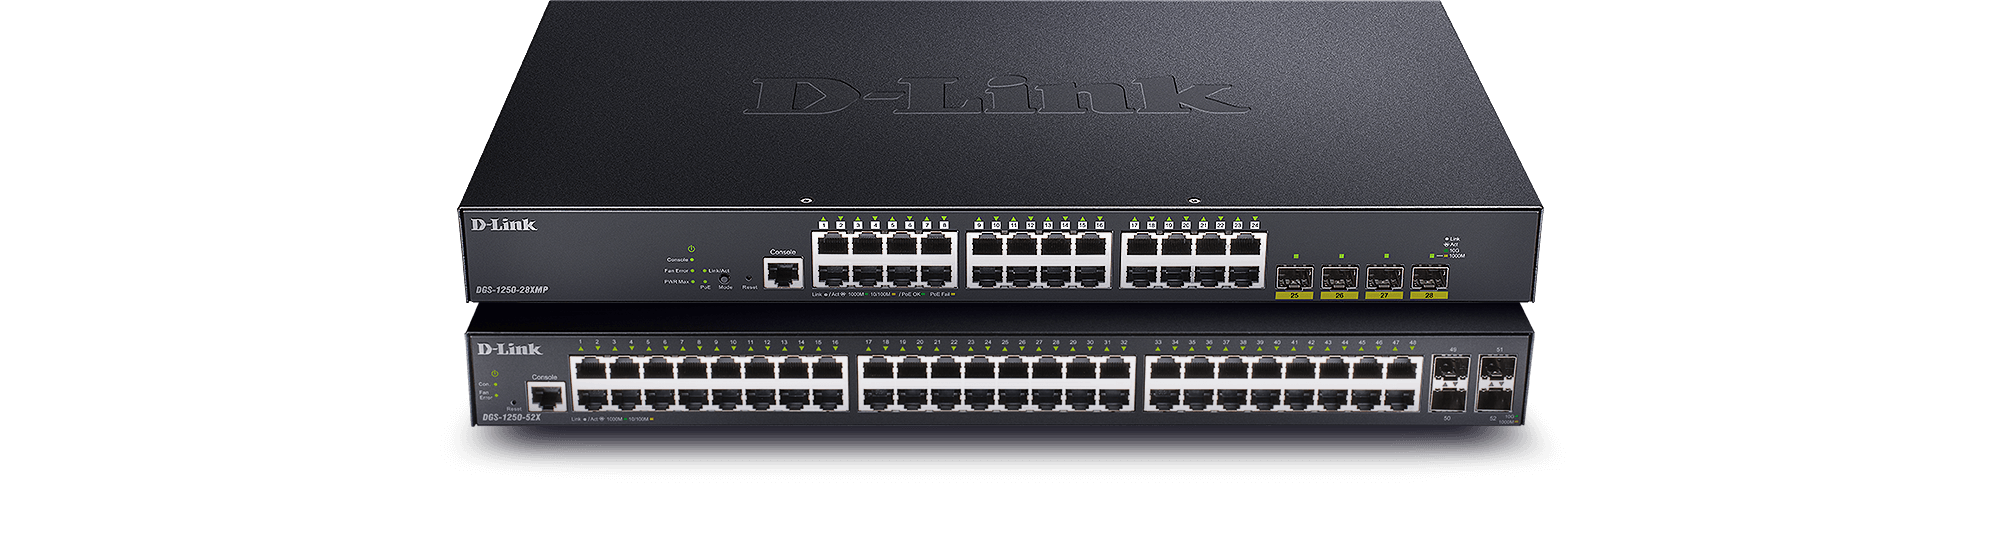 DGS-1250 28-port and 52-port switches